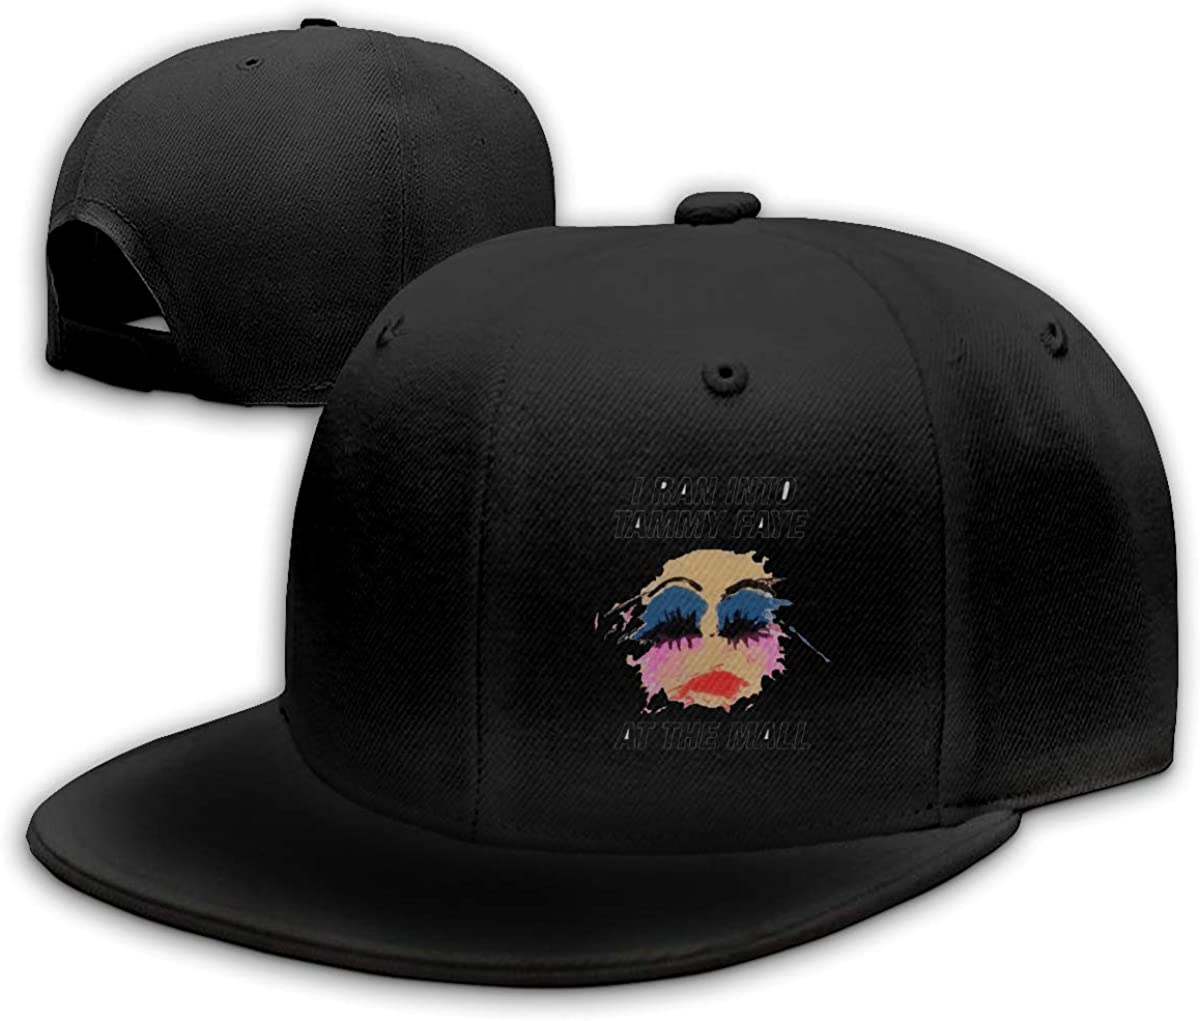 ORYISGAD I/ Ran/ Into/ Tammy/ Faye/ at/ The/ Mall Sports Cap for Mens and Womens